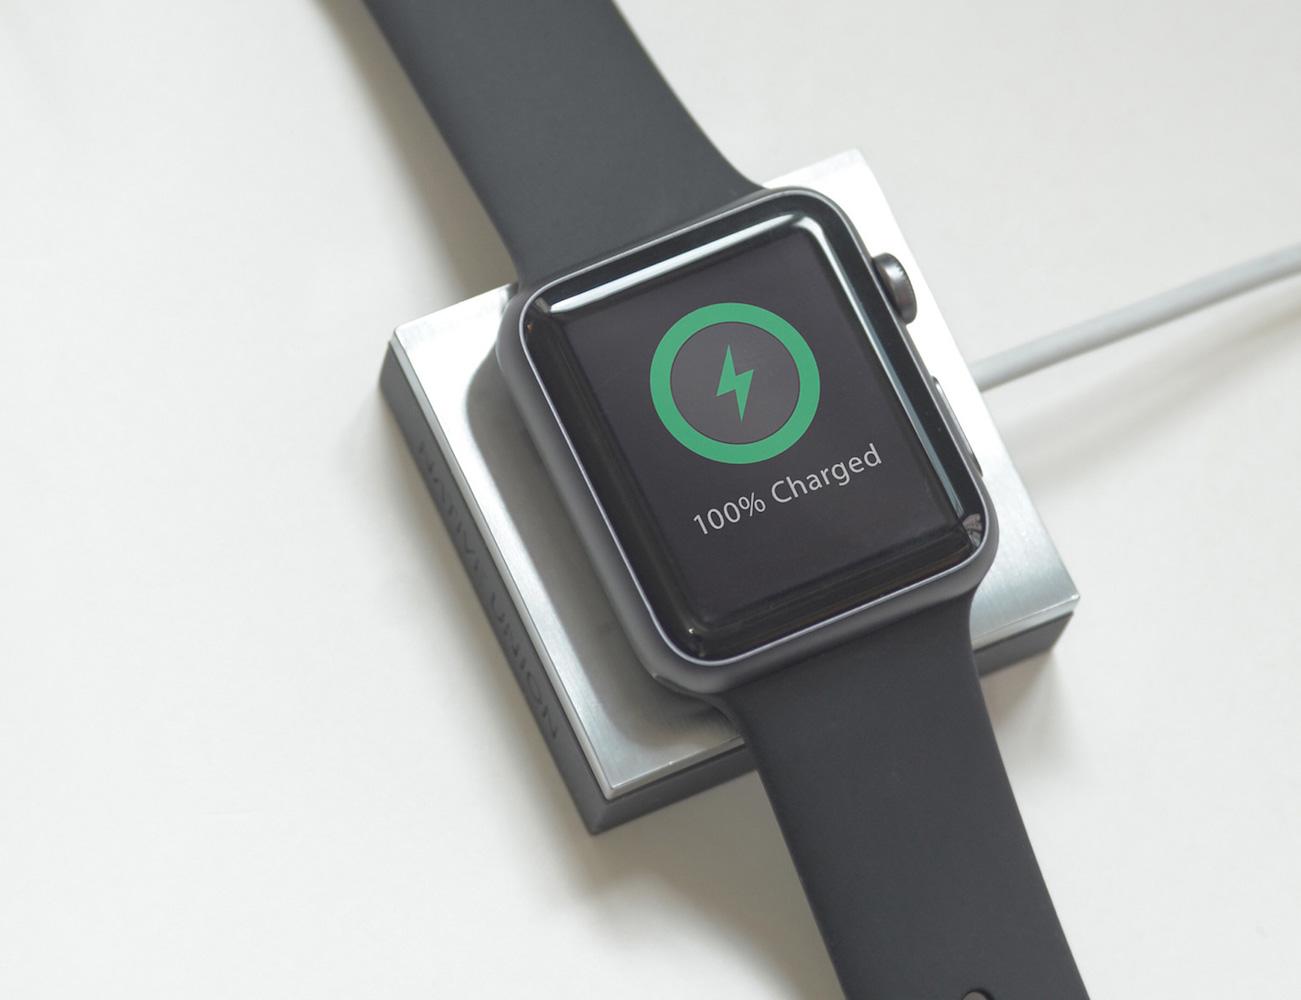 ANCHOR – Charging Pad for Apple Watch by Native Union